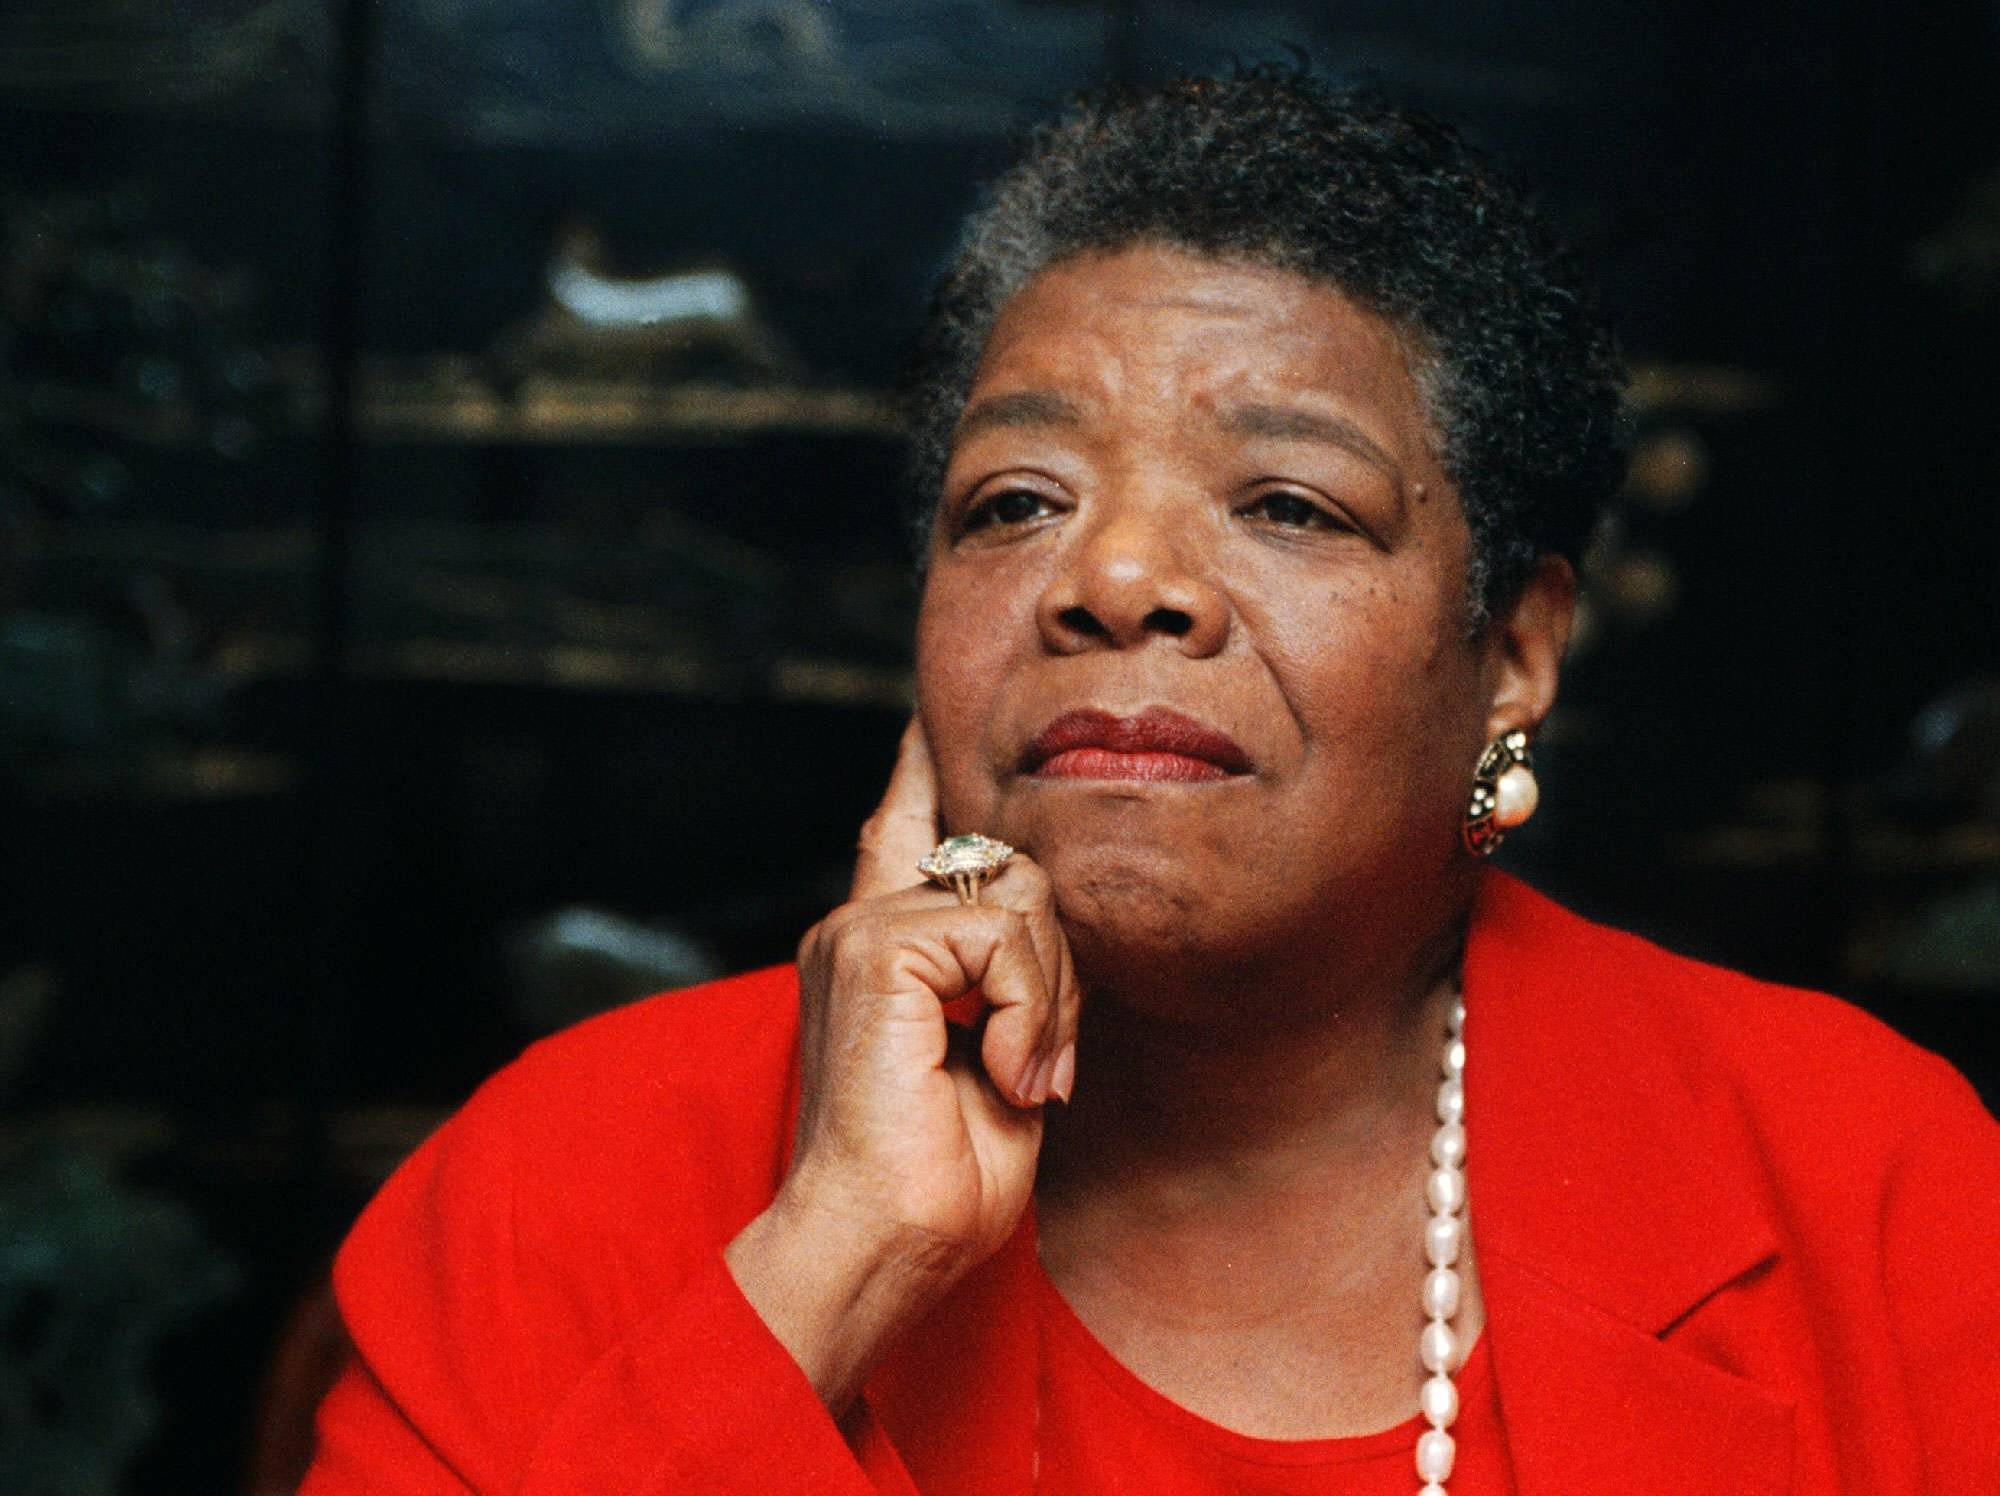 Maya Angelou, poet in residence at Wake Forest University, talks about the poem she wrote for President Clinton's inauguration from her office in Winston-Salem, N.C., Sept. 16, 1996. Angelou will narrate the poem to music Saturday at the school.